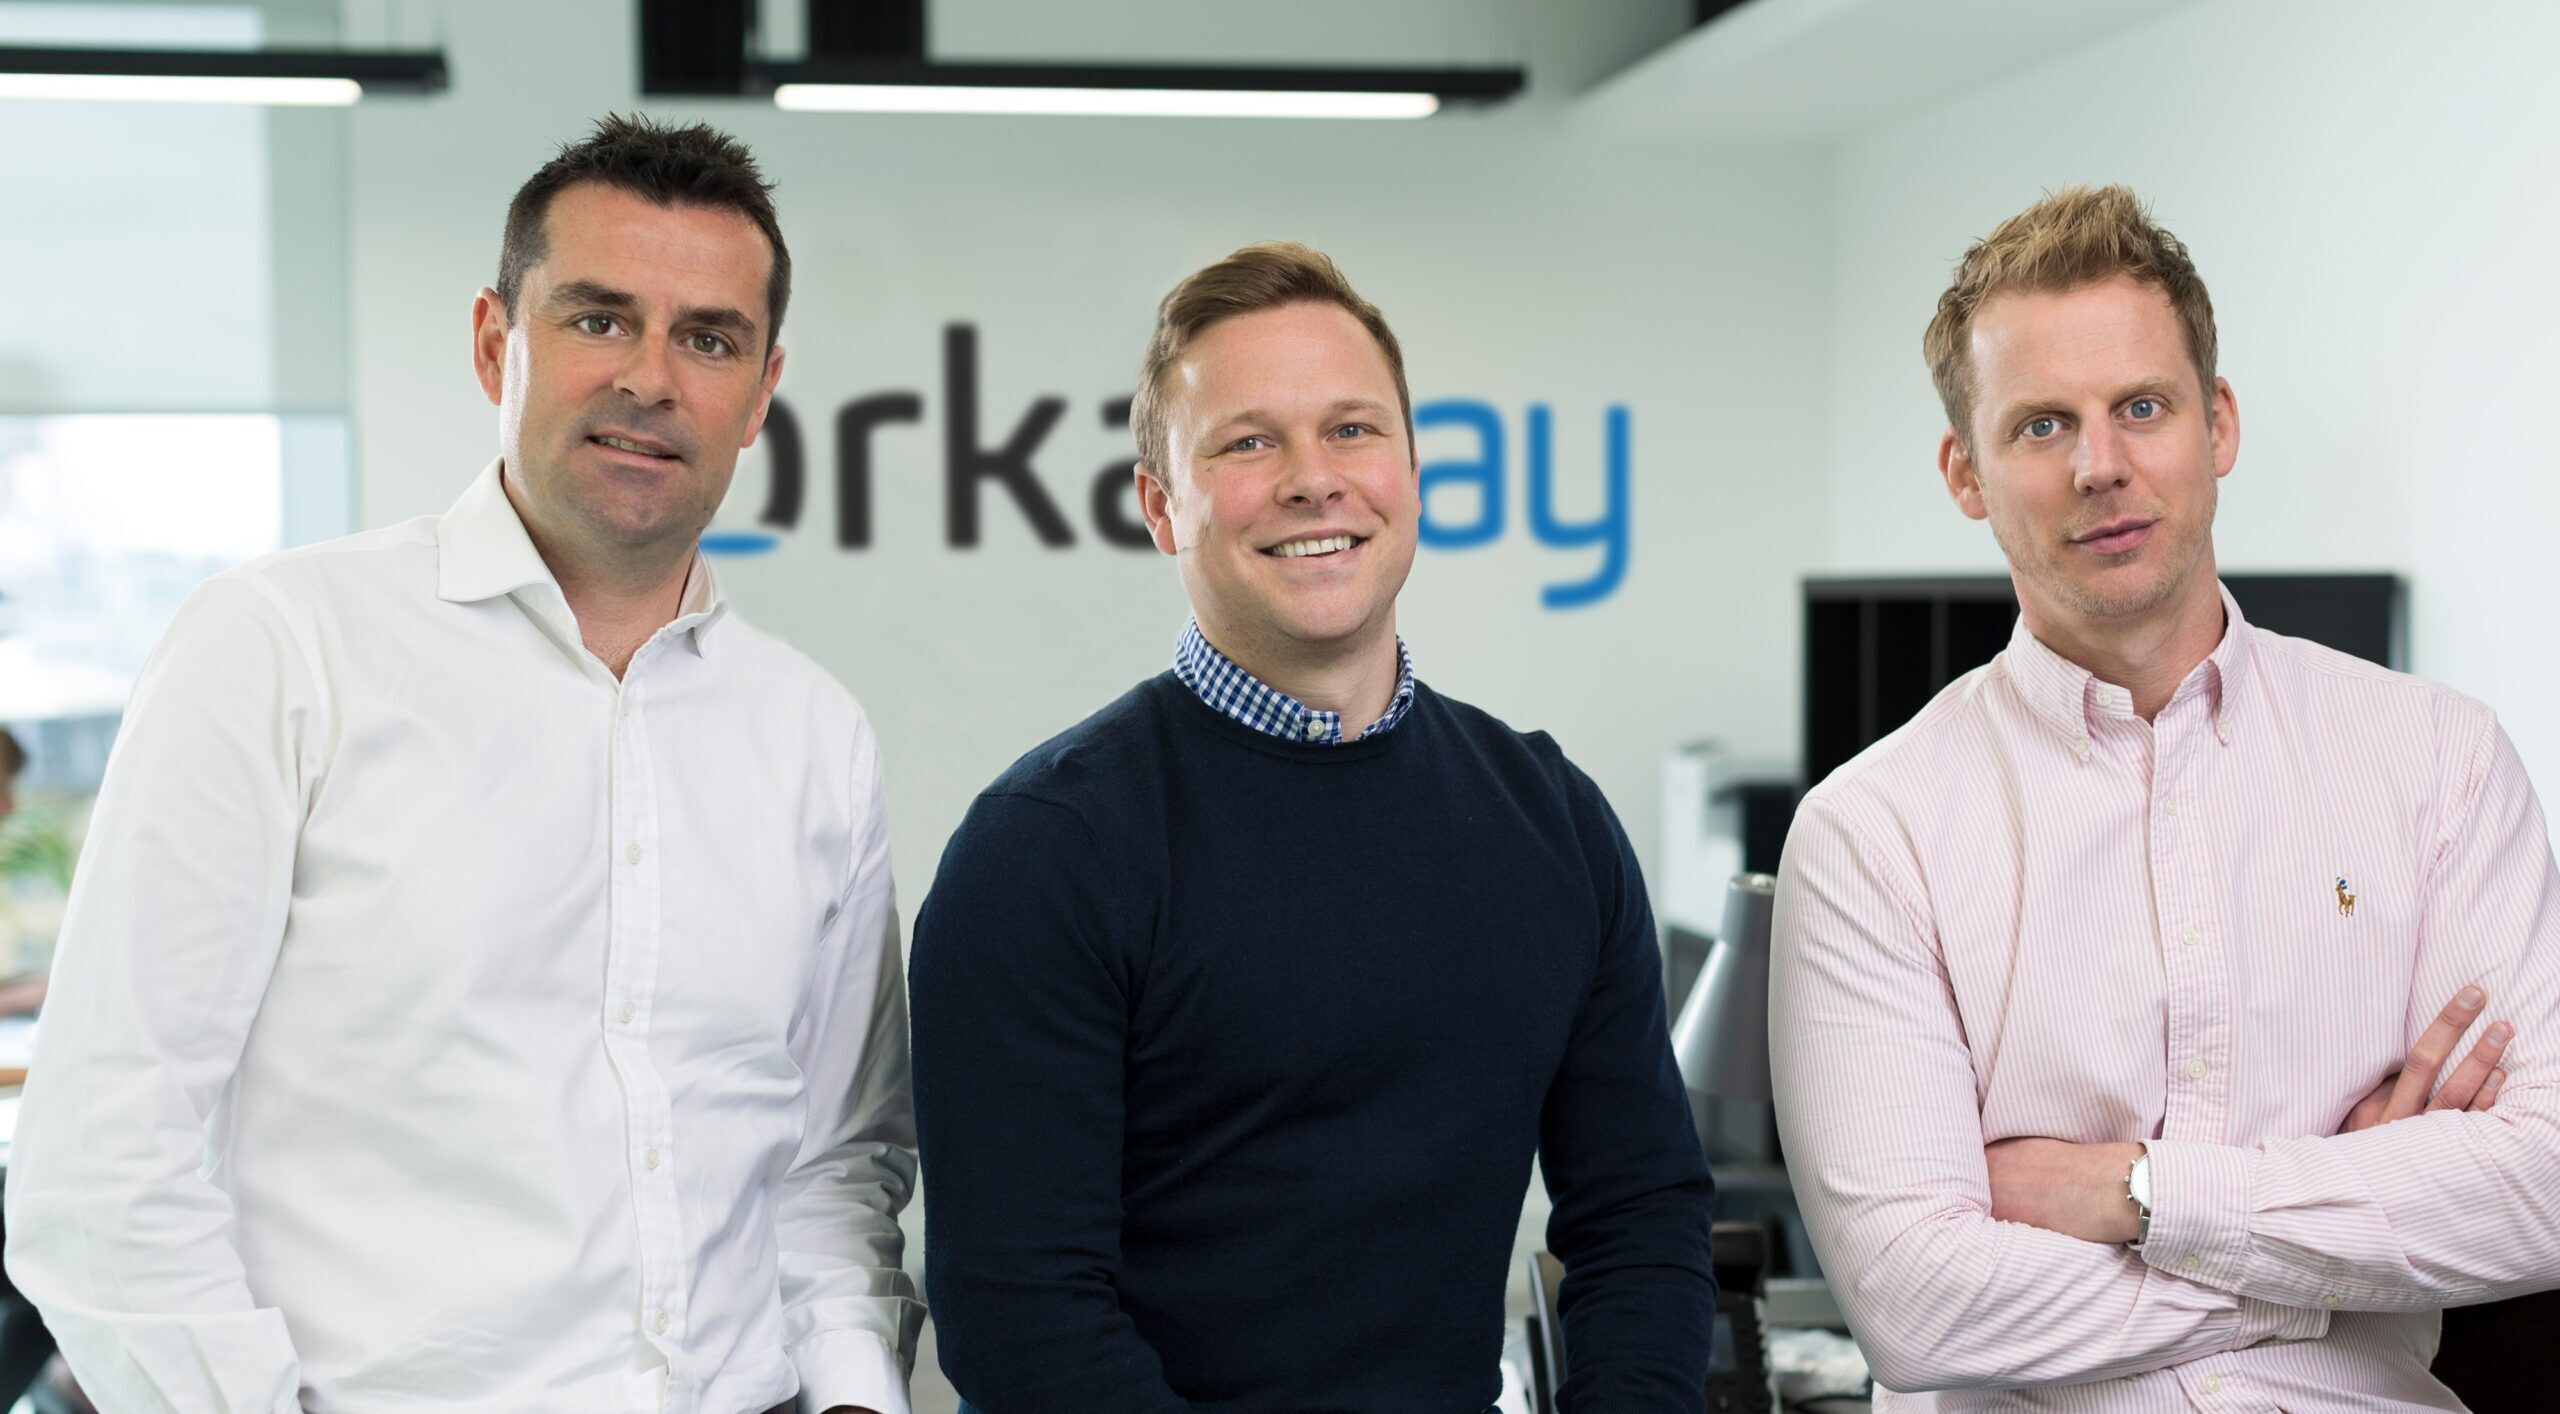 Orka raises £29m to expand early wage access product for shift workers